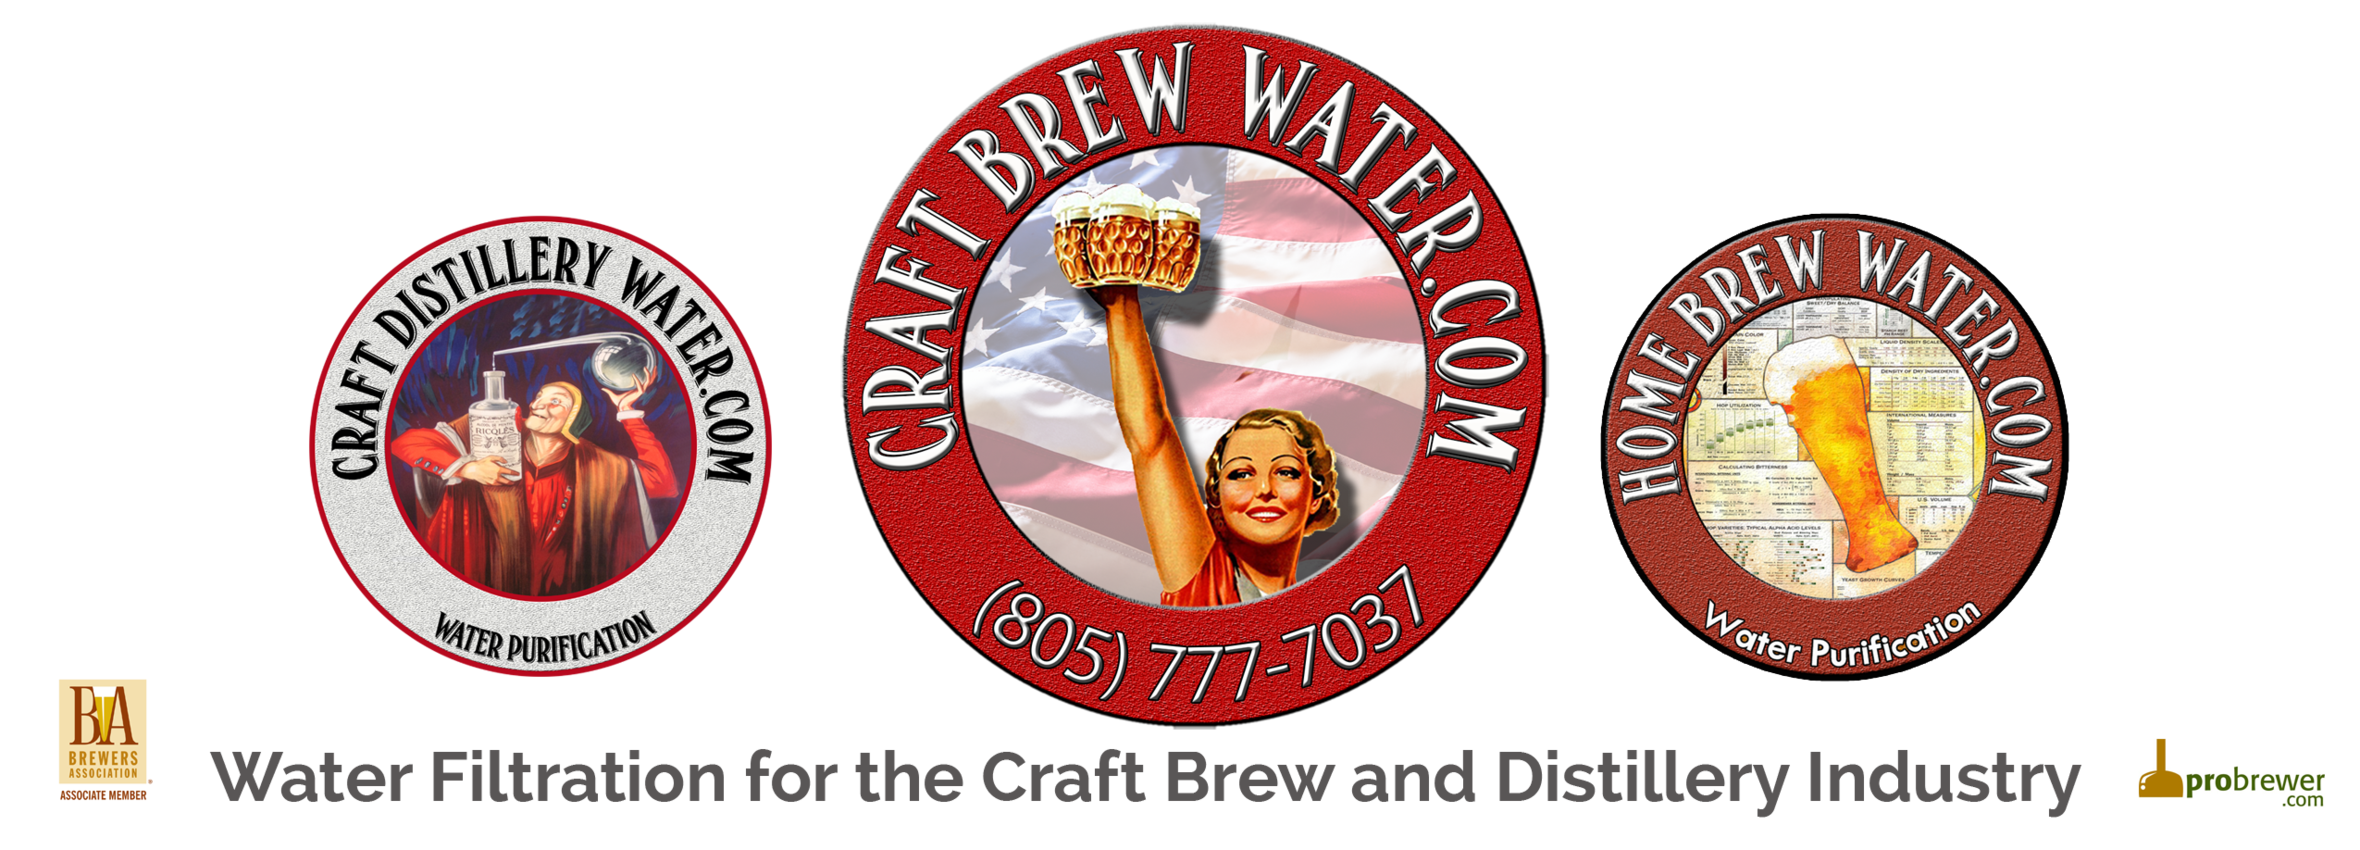 Craft Brew Water